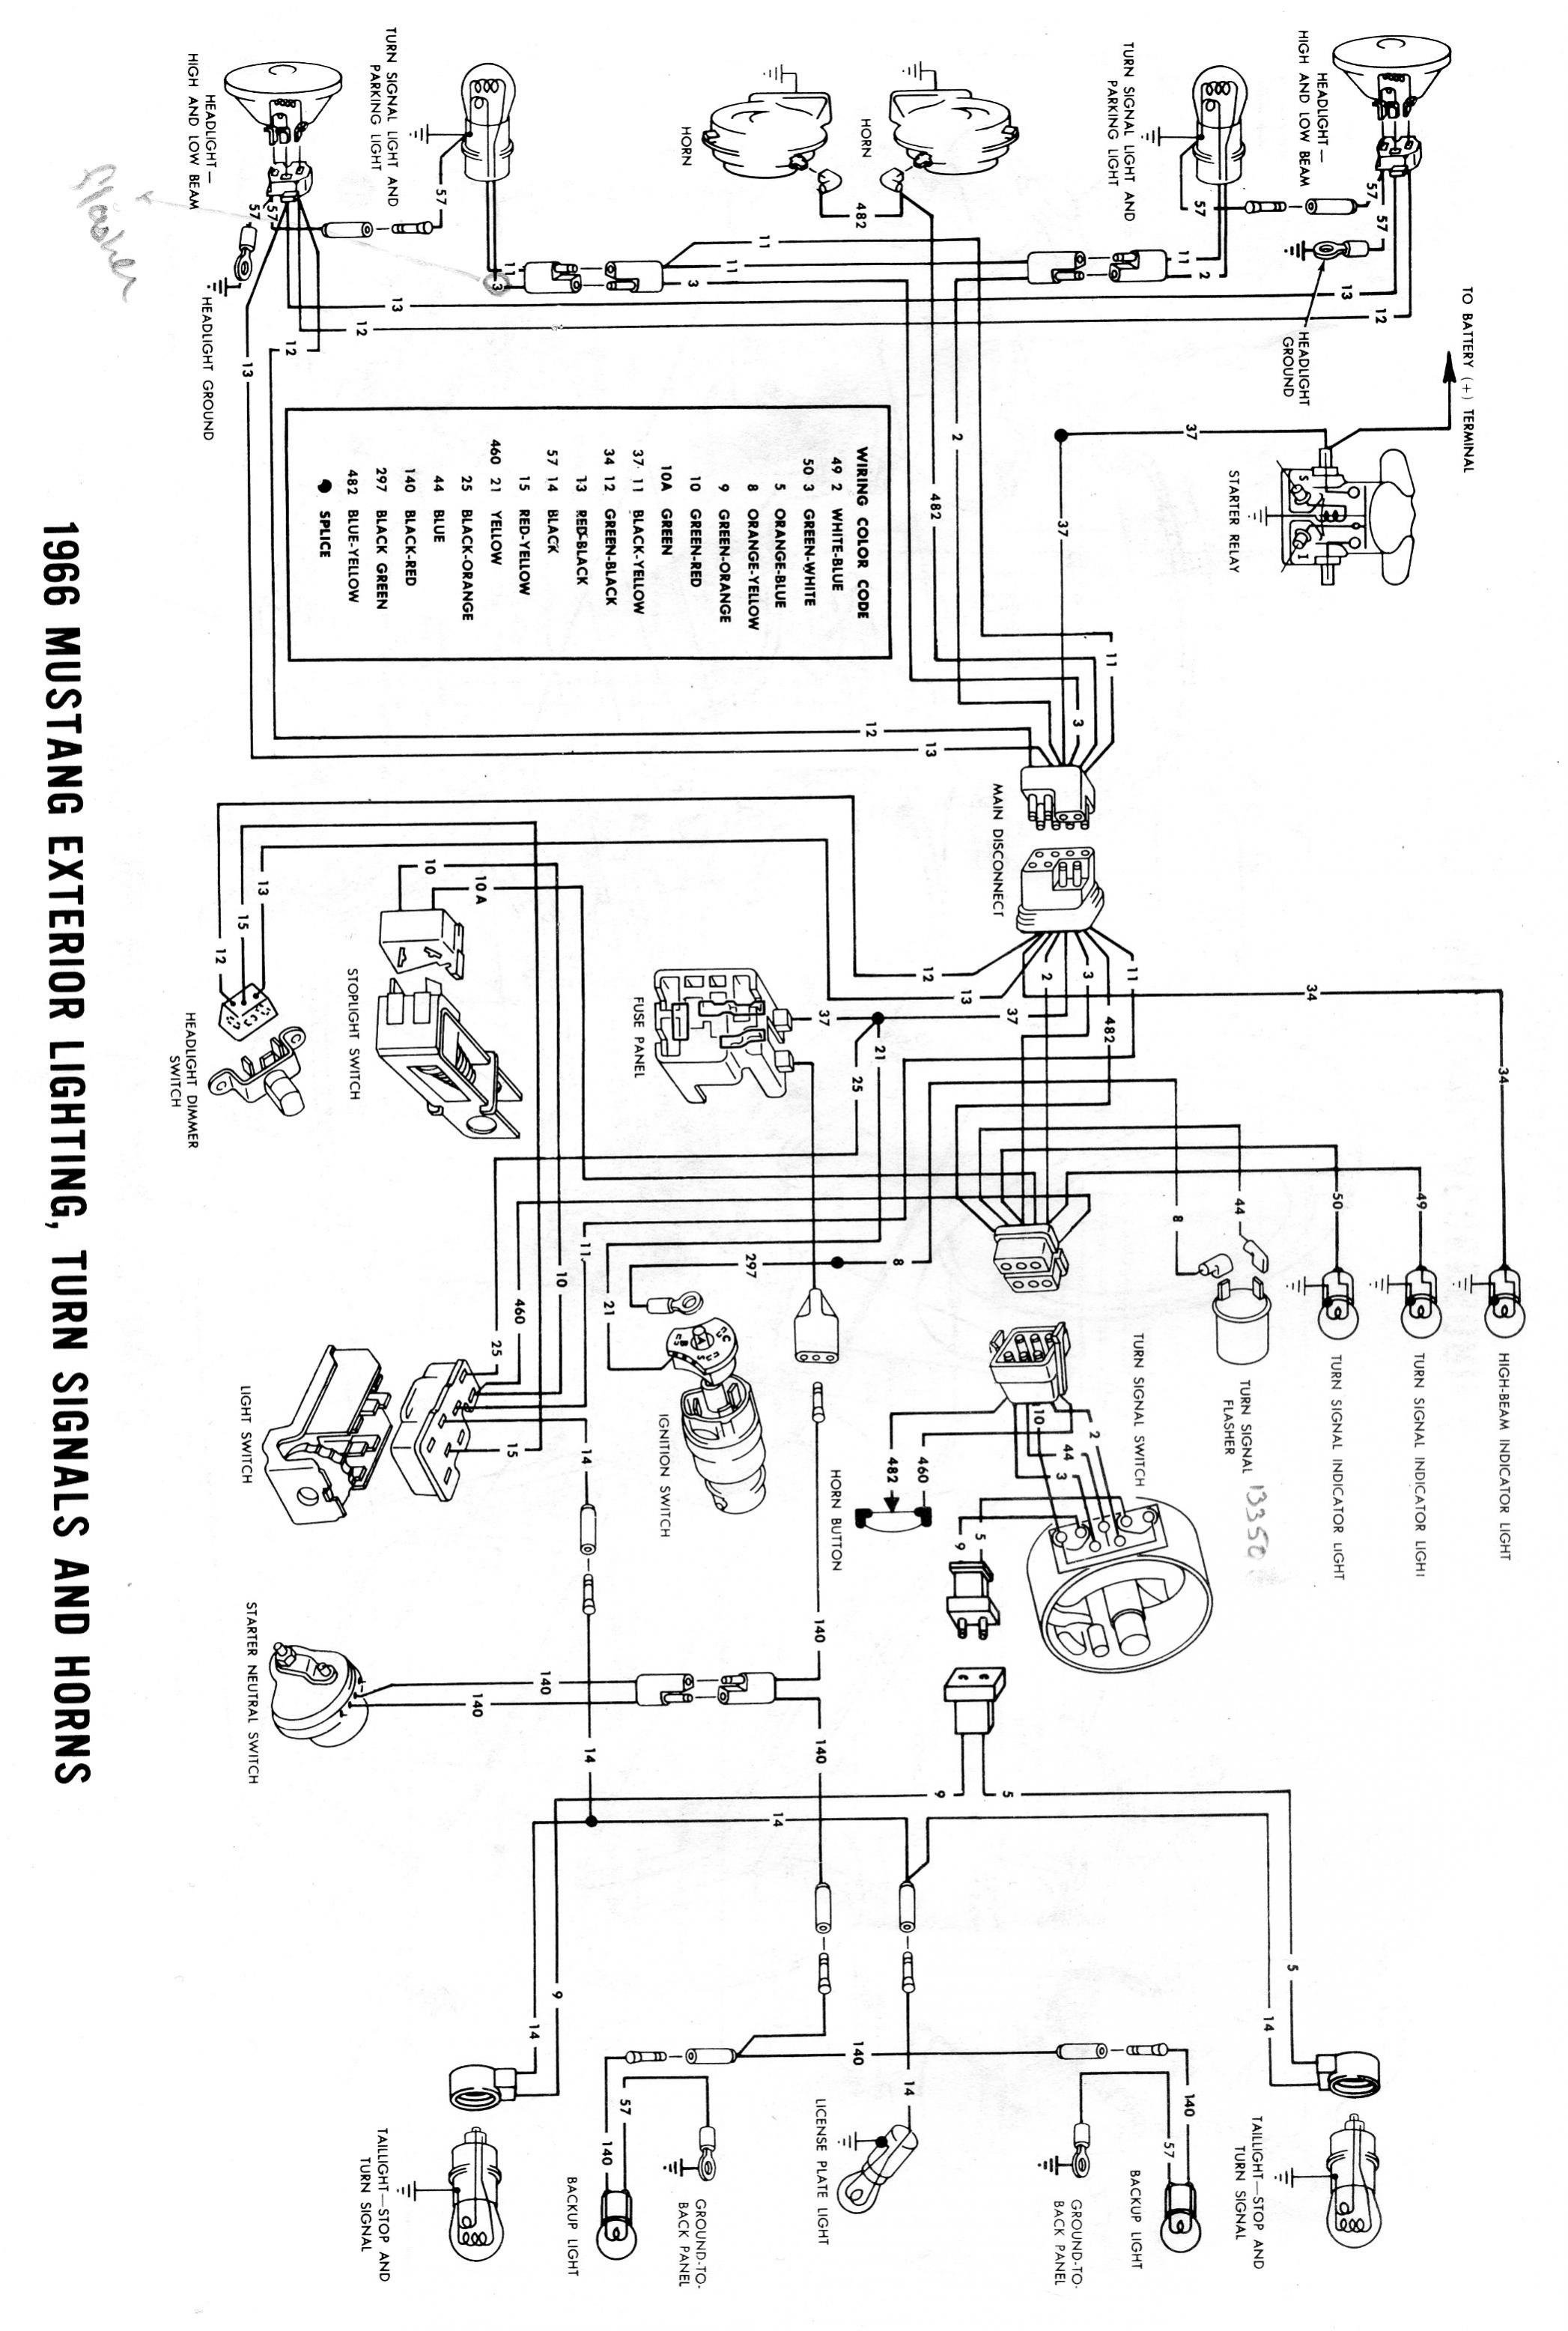 mustang horn diagram wiring diagram for car engine dash wiring diagram for 1955 in addition 78 ford f 150 wiring diagram moreover 94 f250